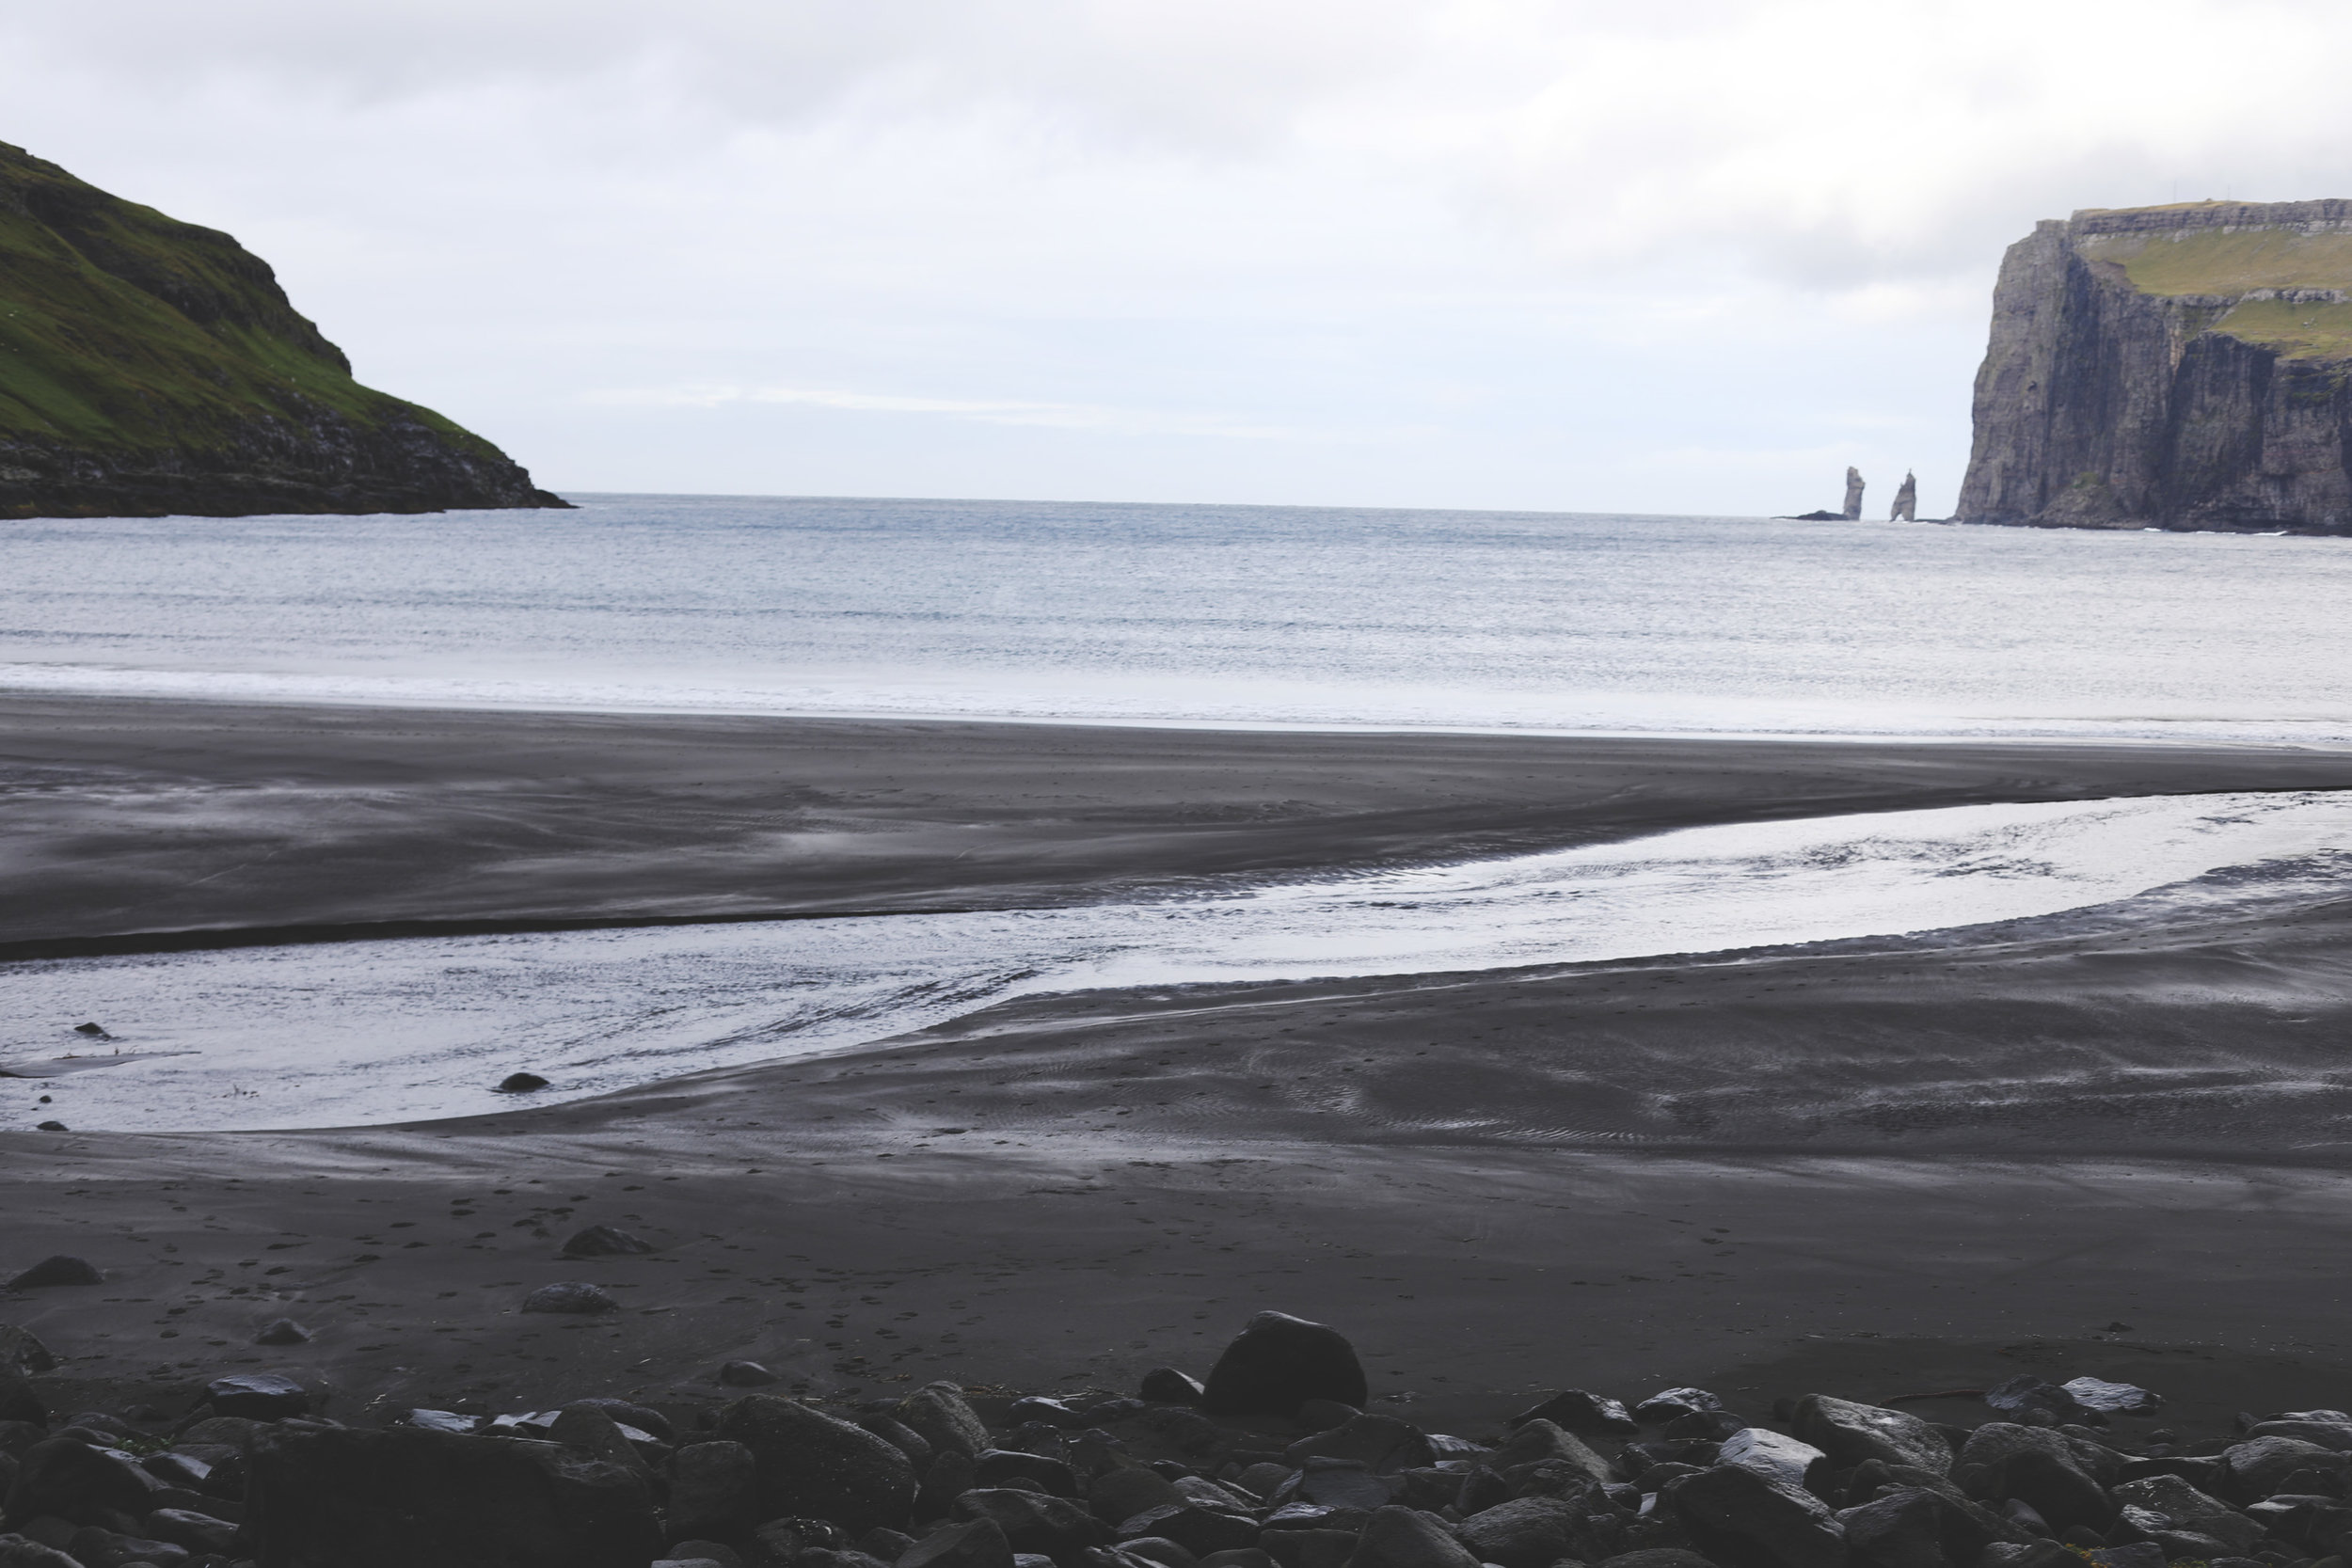 In the distance, toward the right, you can see the two giant sea stacks, Risin og Kellingin.